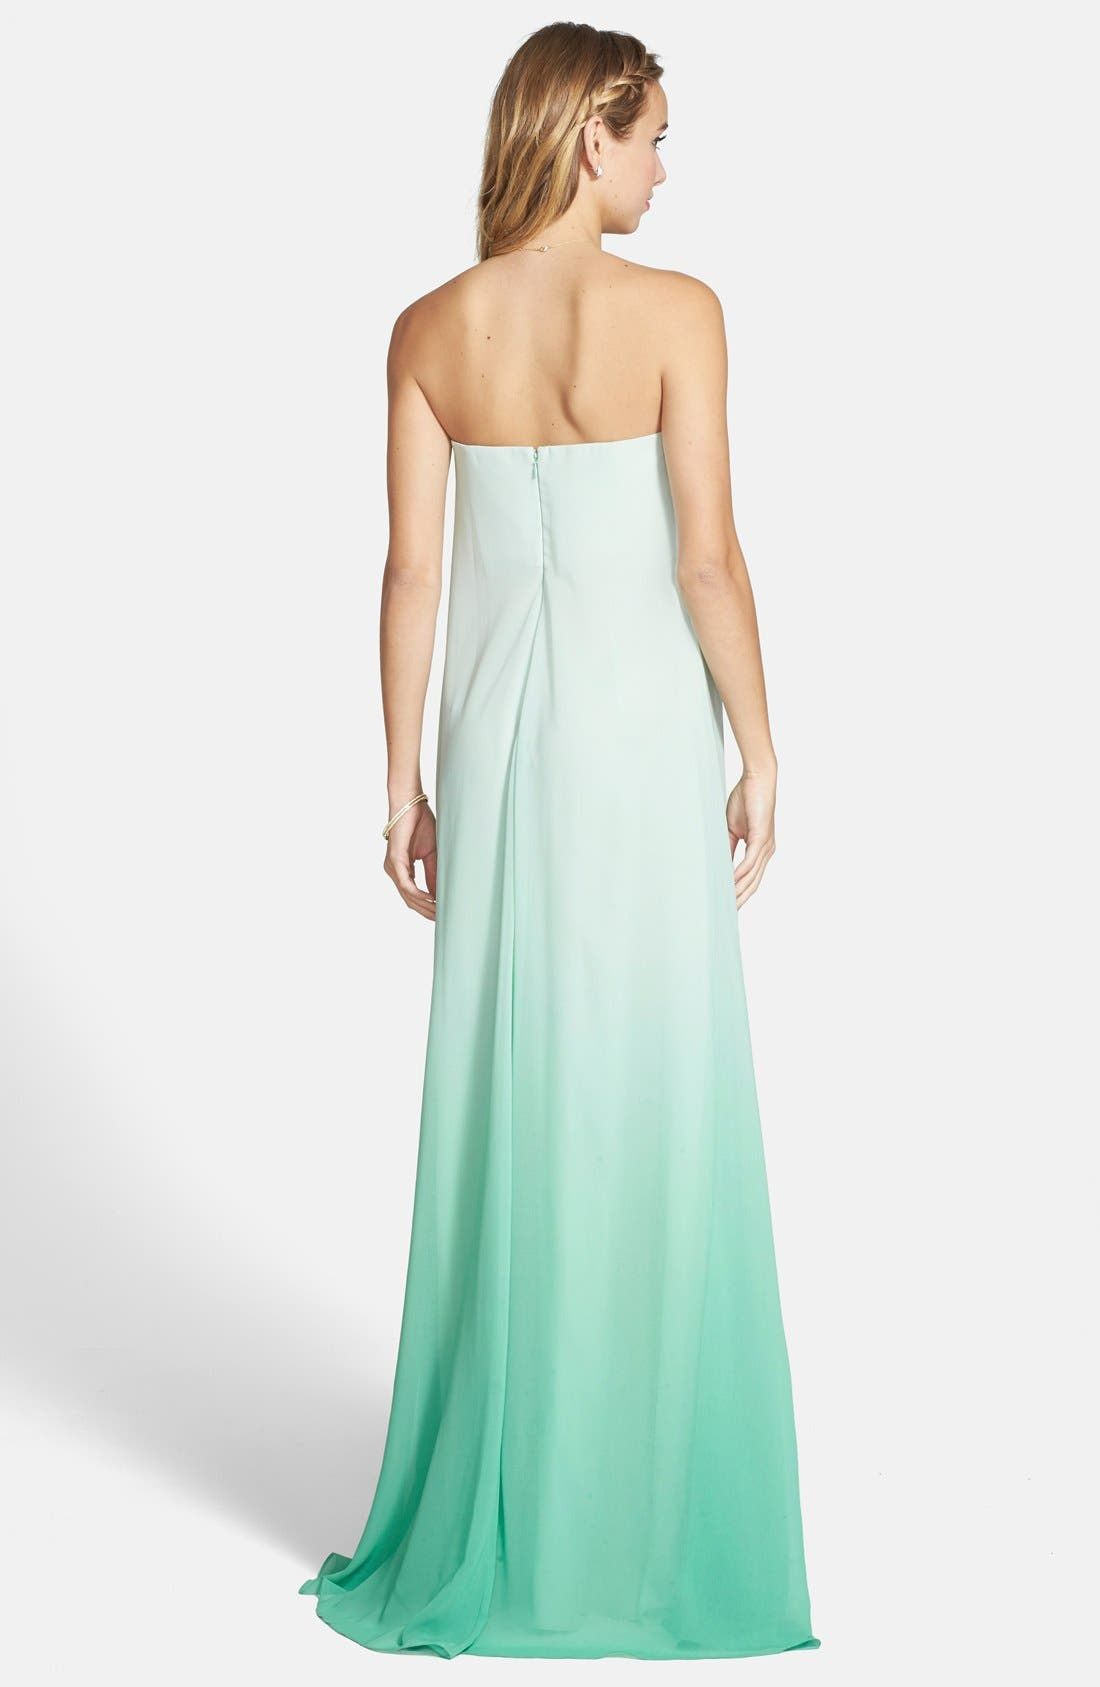 ERIN ERIN FETHERSTON,                             'Daria' Ombré Chiffon A-Line Gown,                             Alternate thumbnail 2, color,                             303